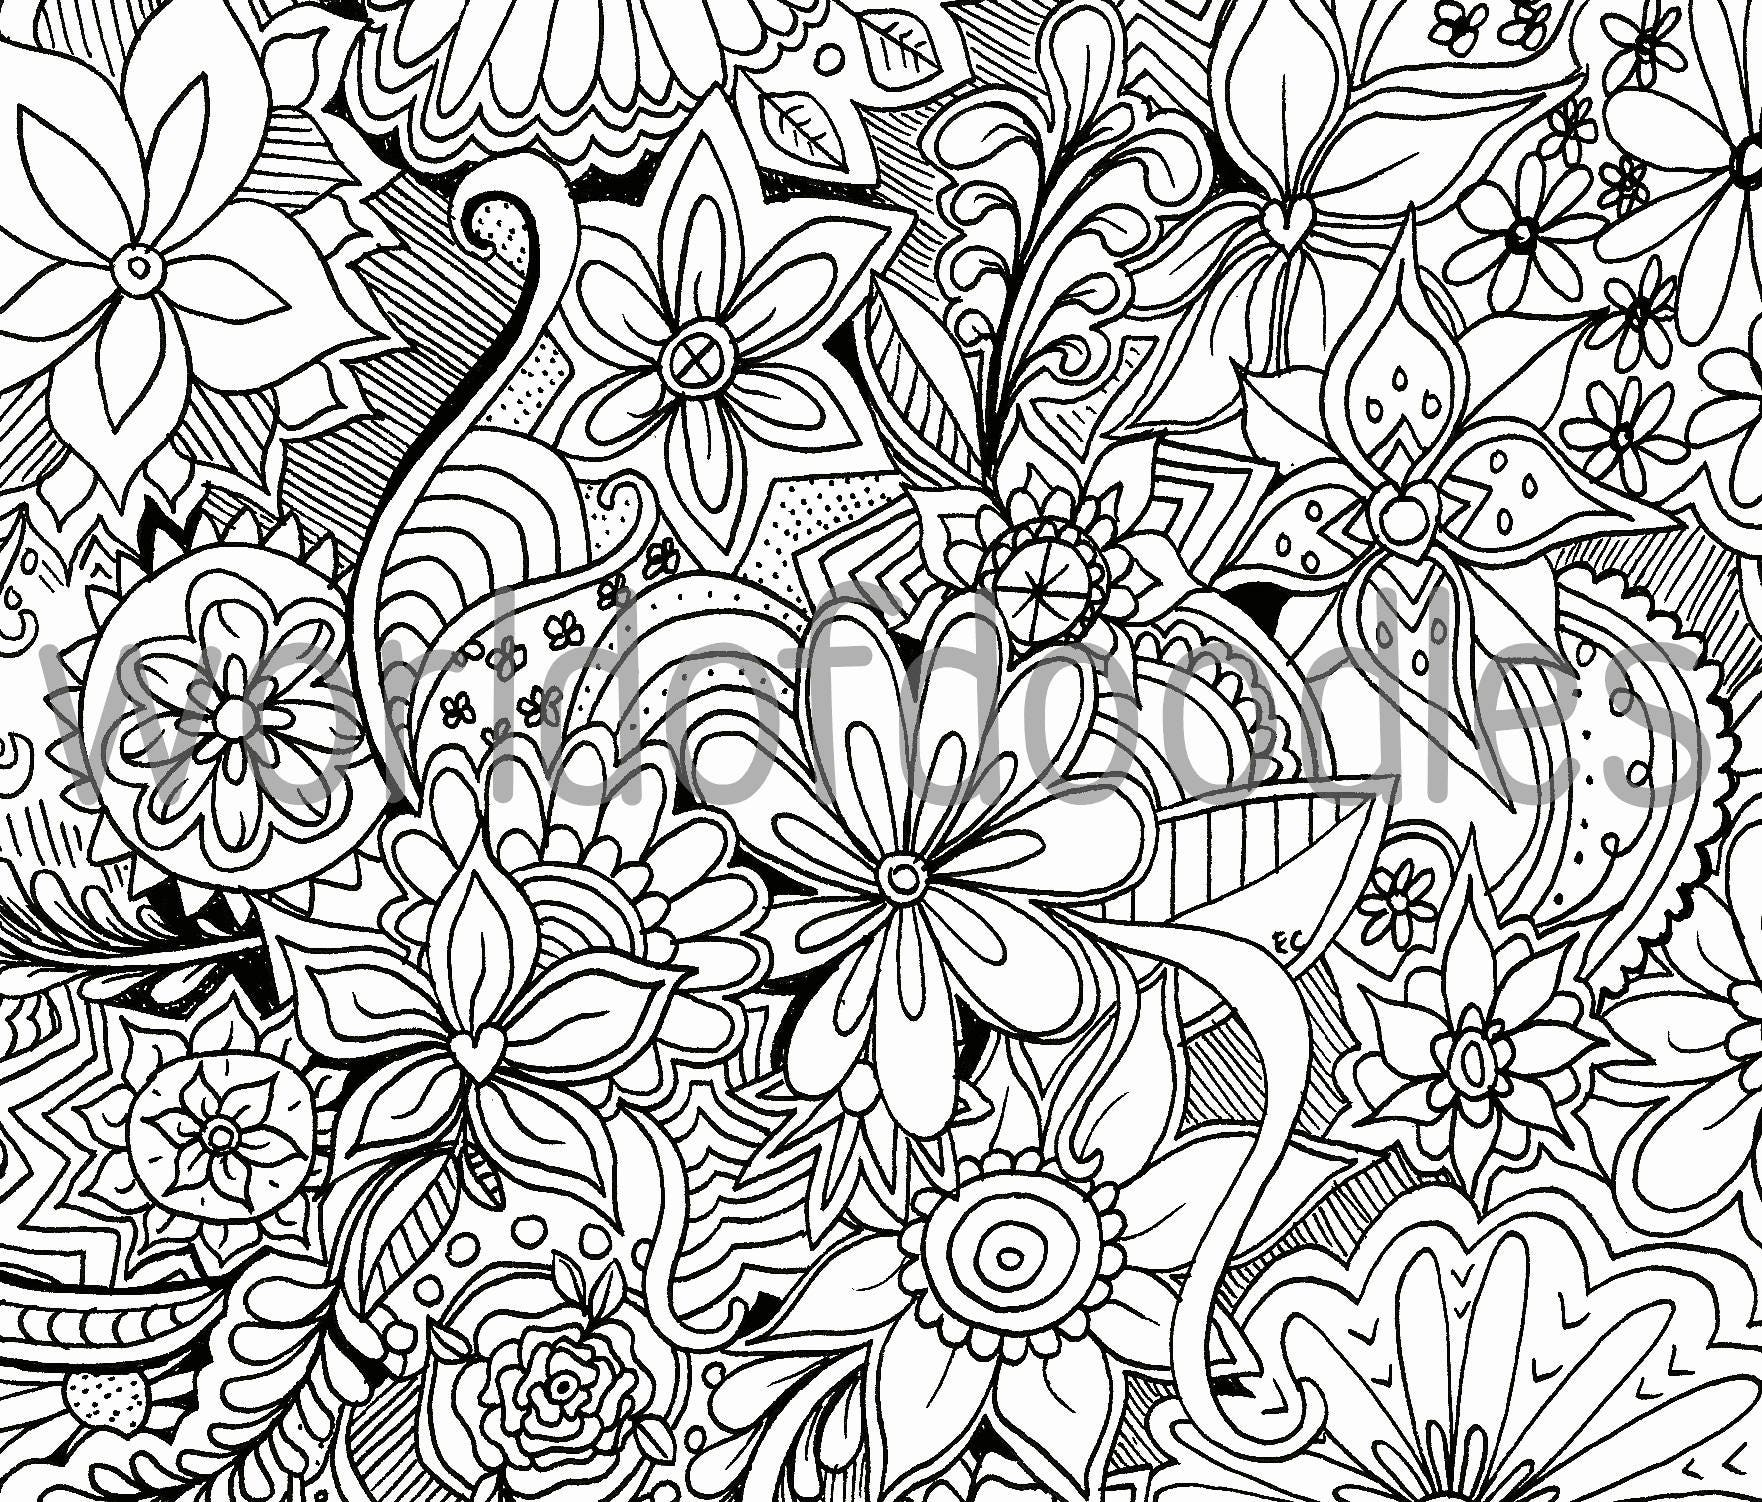 Flower Garden 1 Detailed Colouring